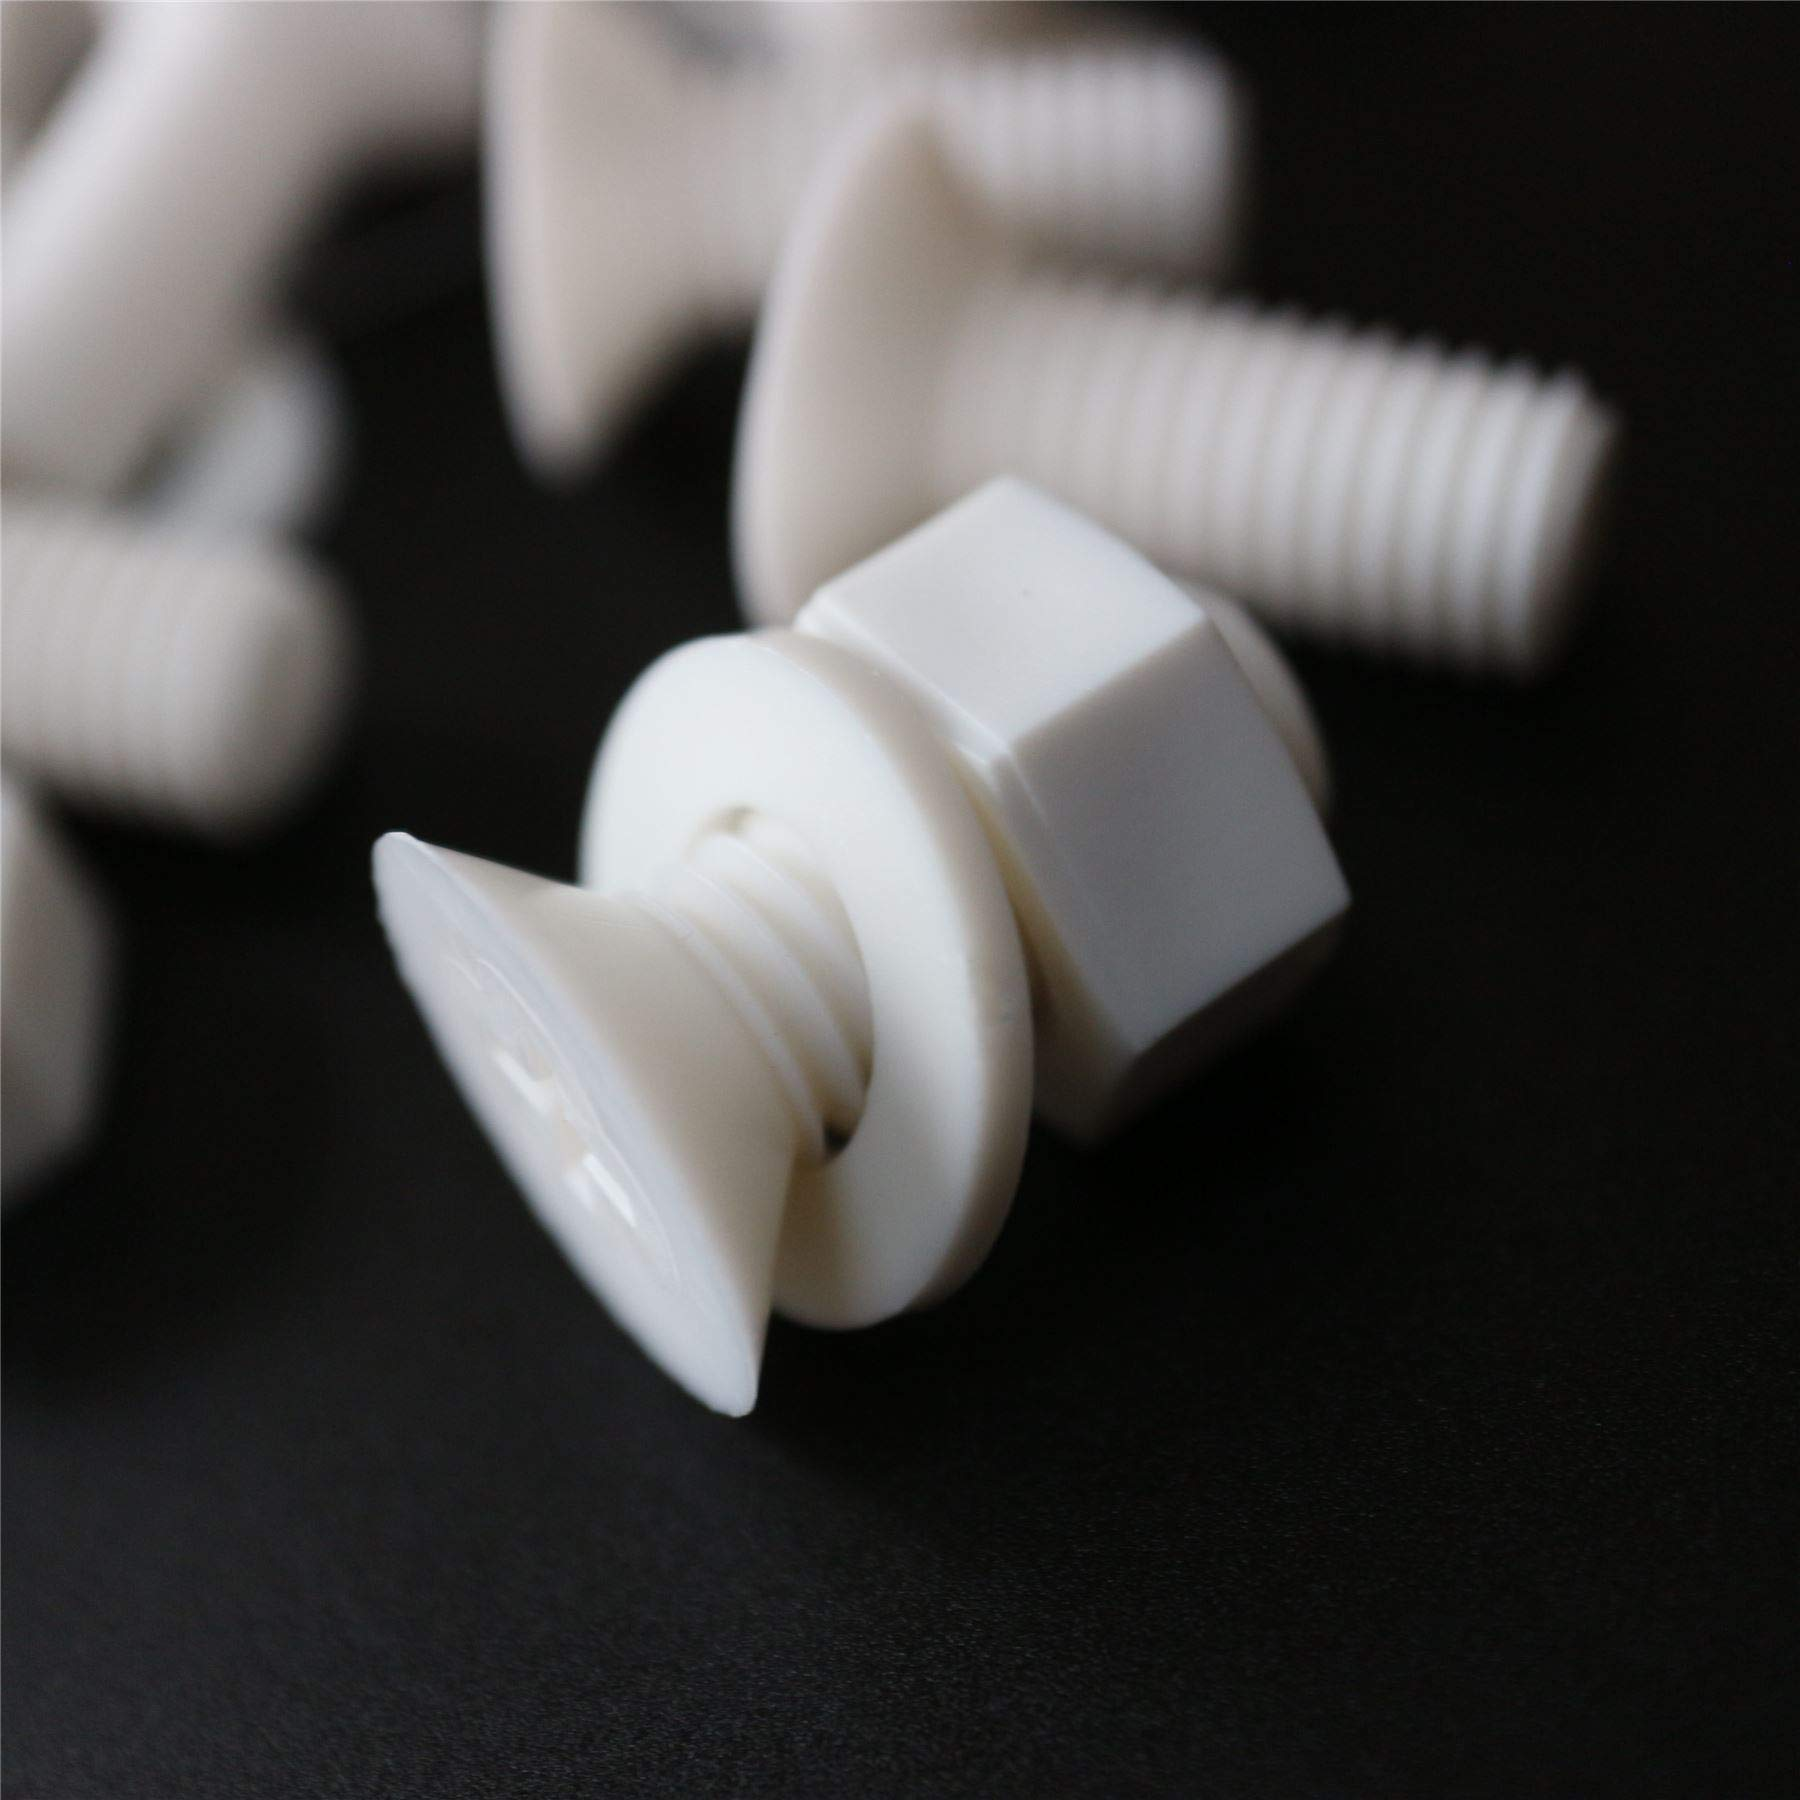 20 x White Countersunk Screws Polypropylene (PP) Plastic Nuts and Bolts, Washers, M8 x 20mm, Acrylic, Water Resistant, Anti-Corrosion, Chemical Resistant, Electrical Insulator, Strong. 5/16 x 25/32''